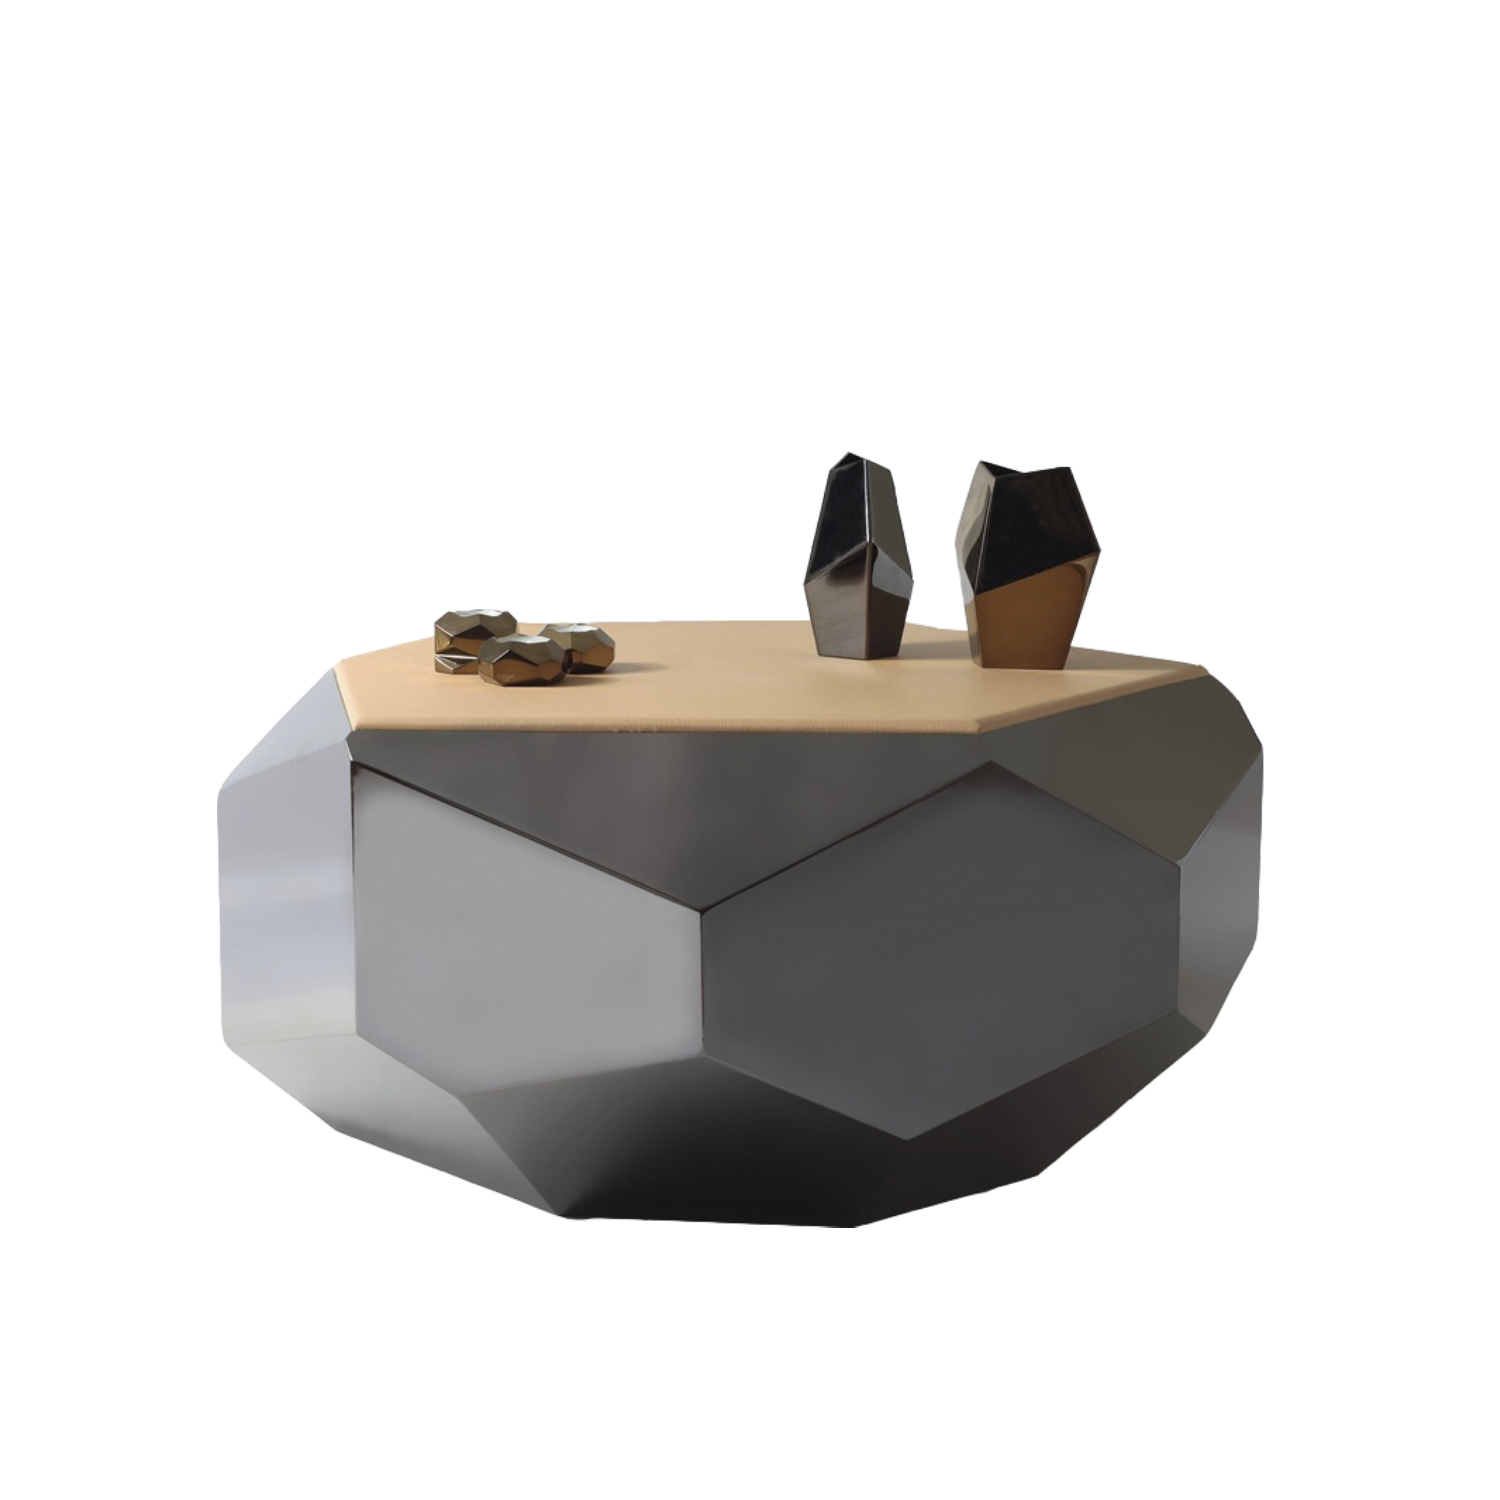 Altair Coffee Table - Altair is a coffee table entirely worked by hand with traditional craft techniques. The structure is in stainless steel with black nickel finish and the top is available in Leather or Patinated Brass. 100% made in Italy.  | Matter of Stuff